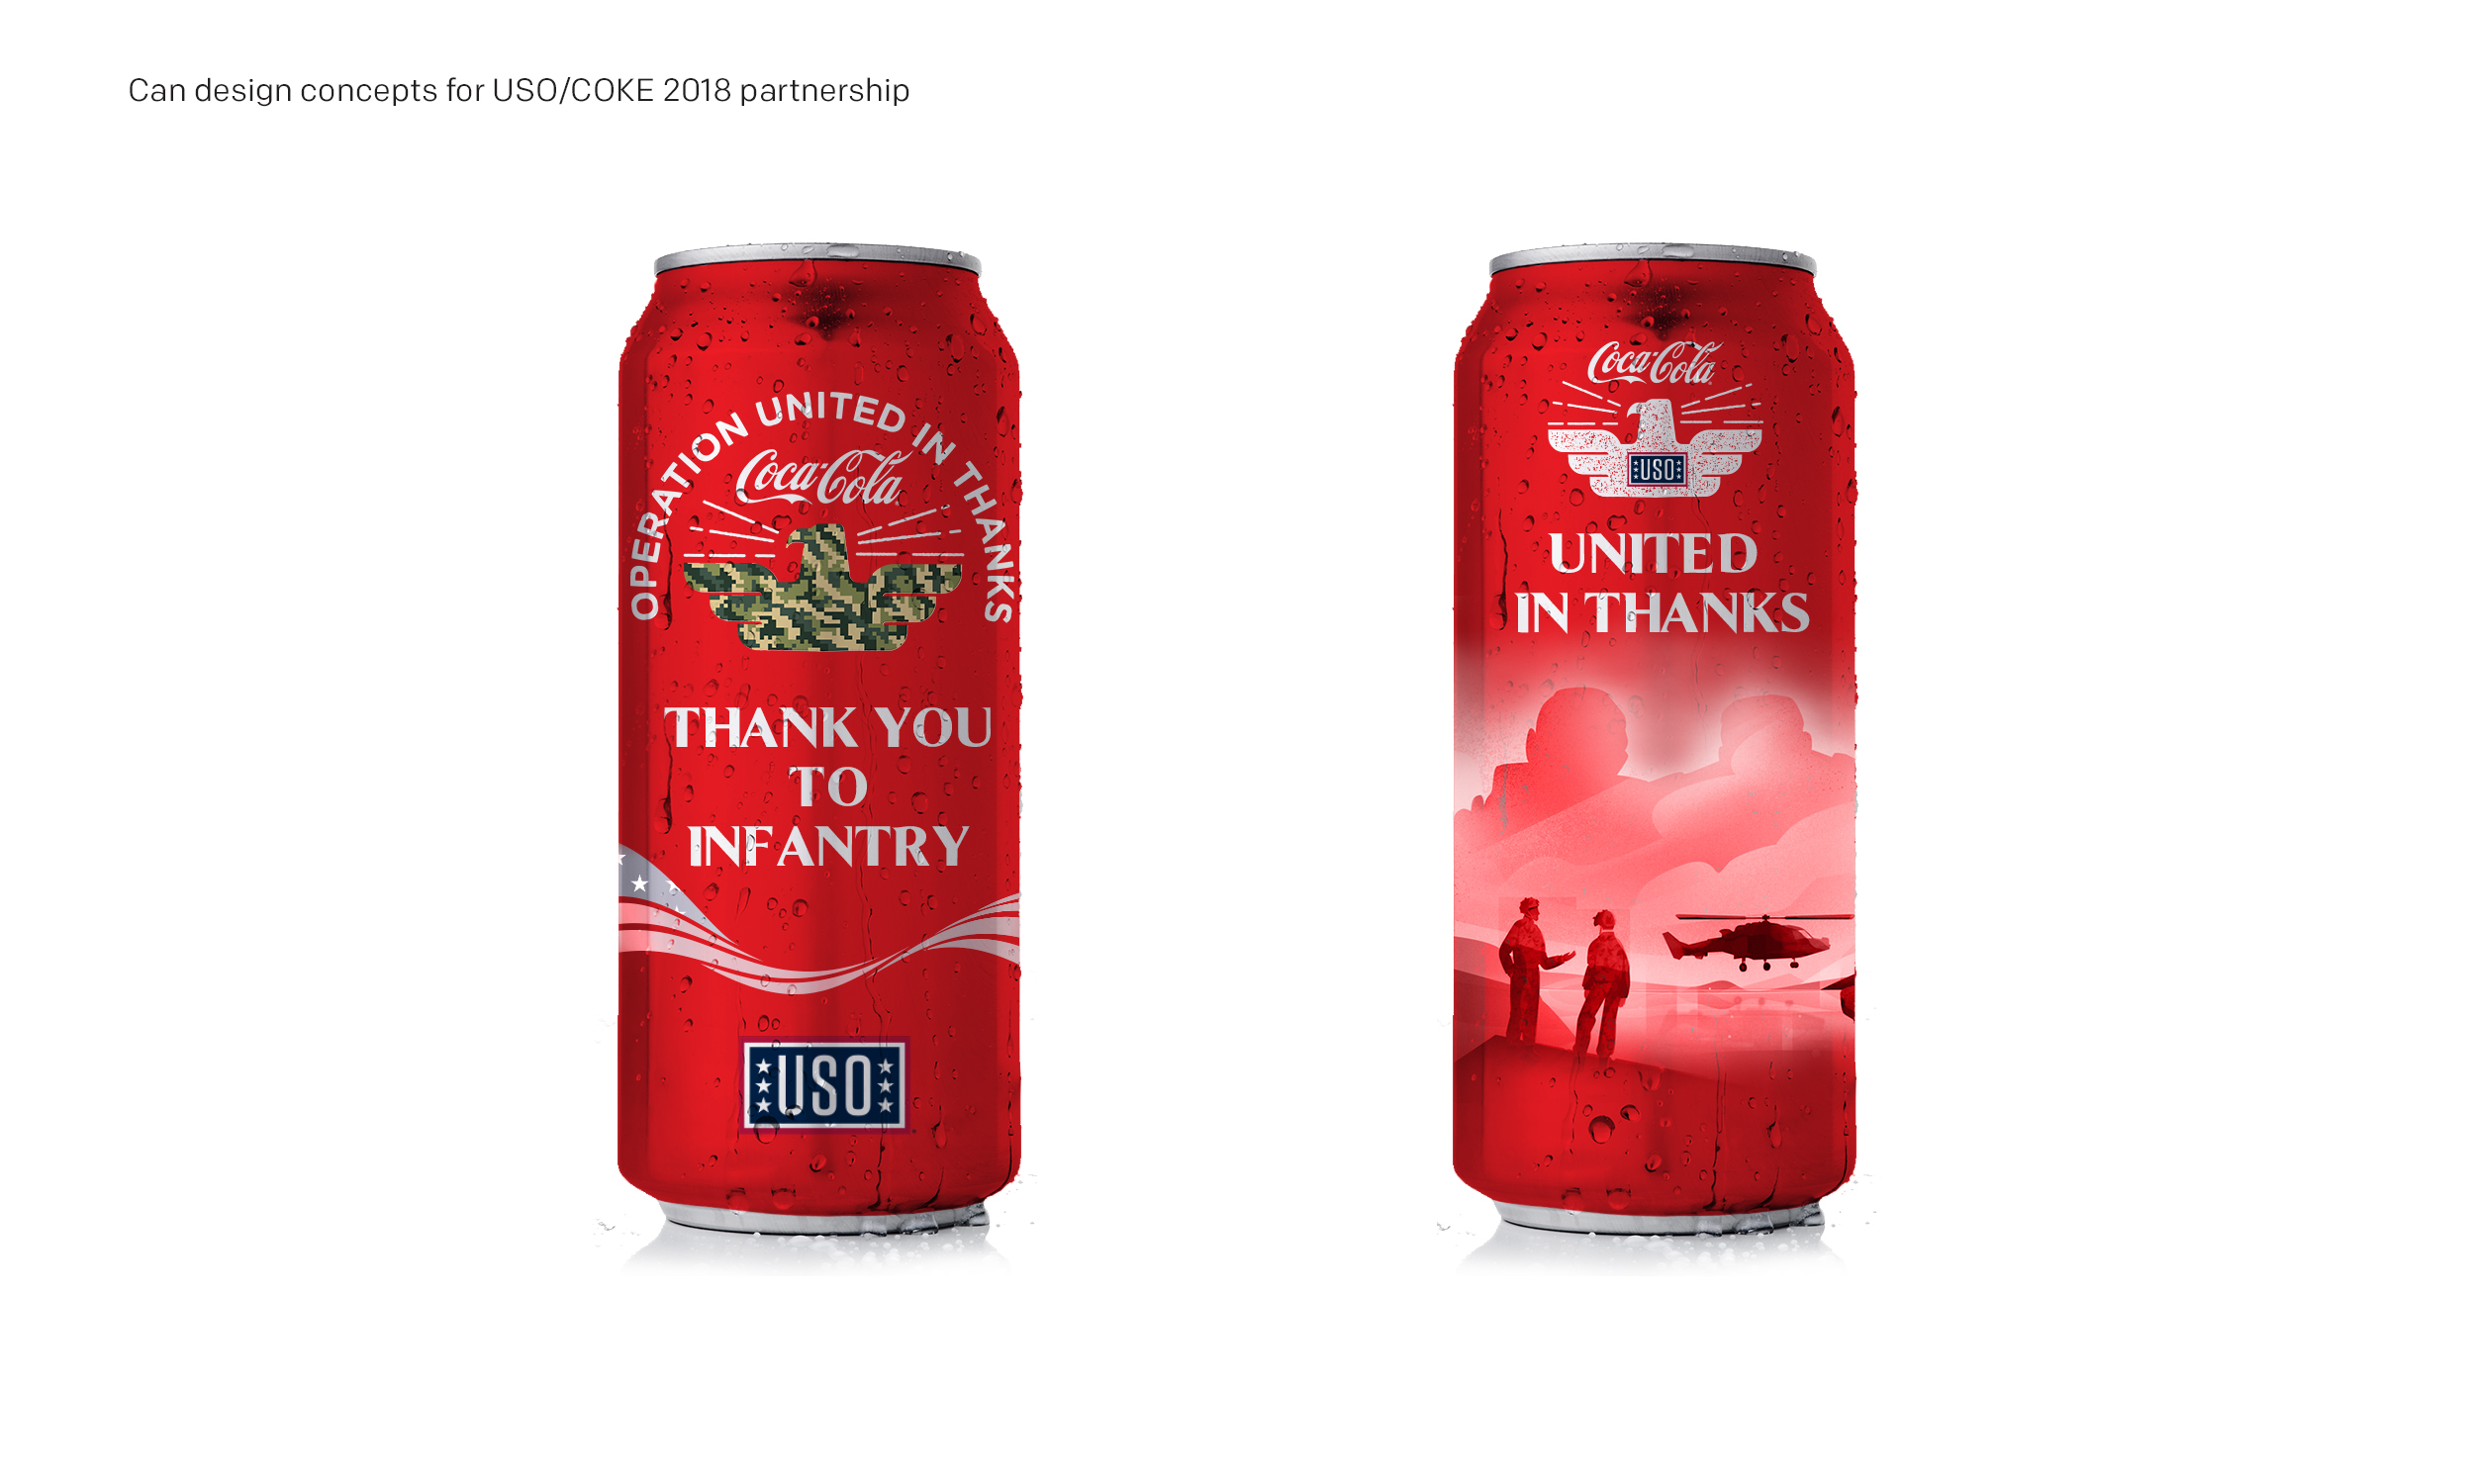 USO-cans.jpg